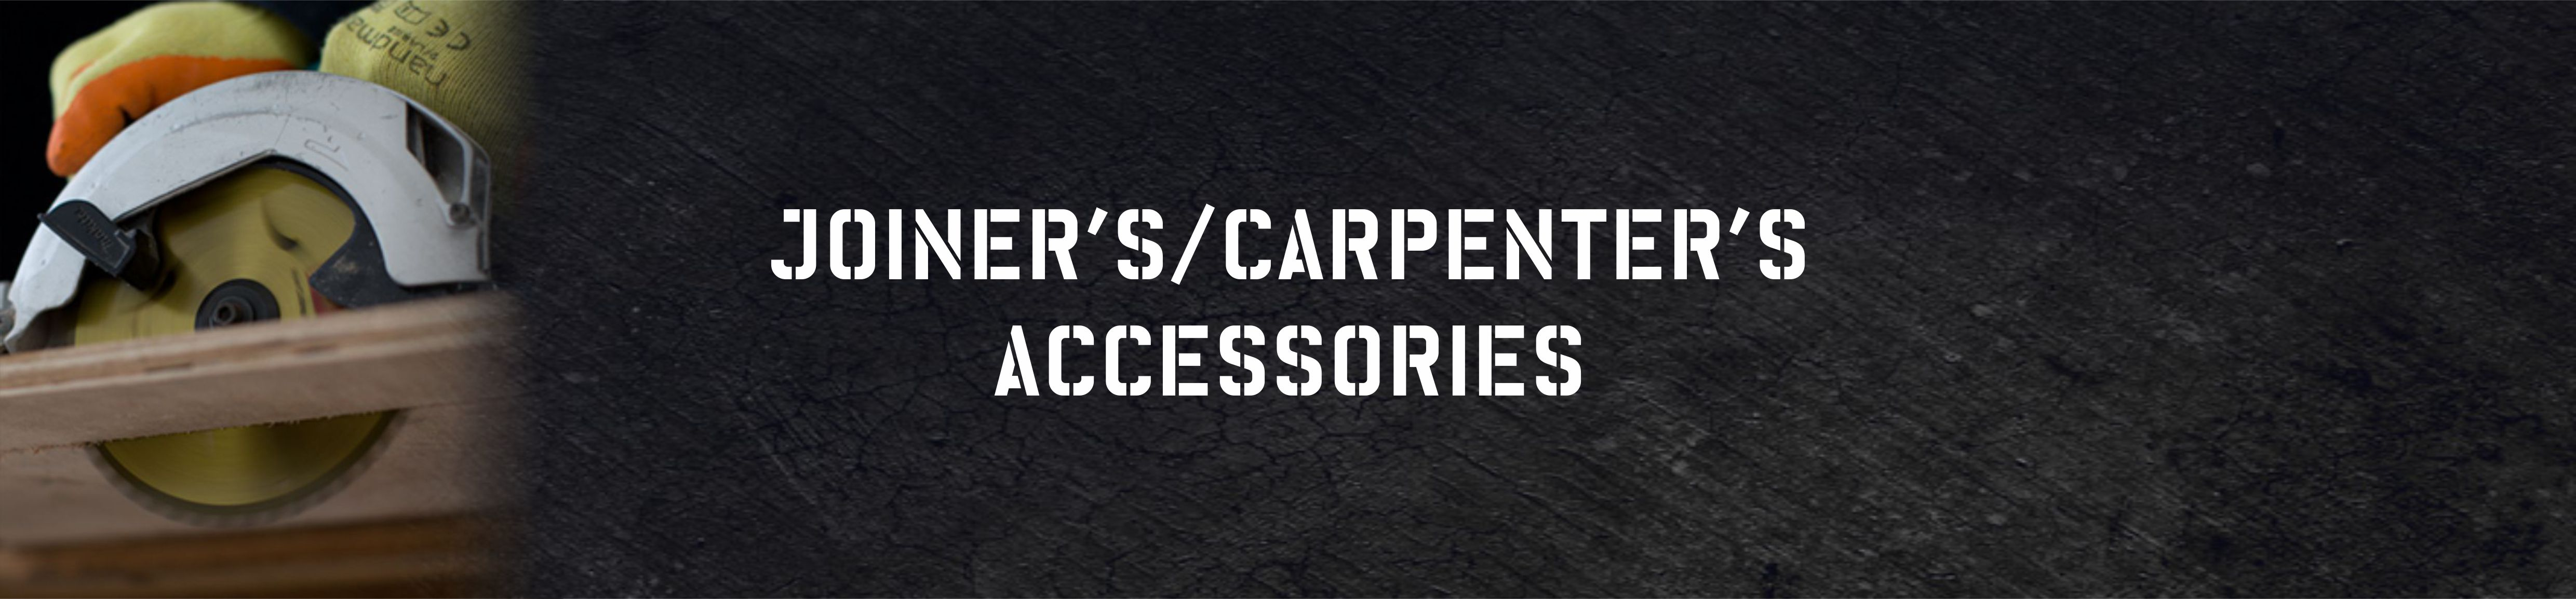 Joiner/Carpenters Accessories